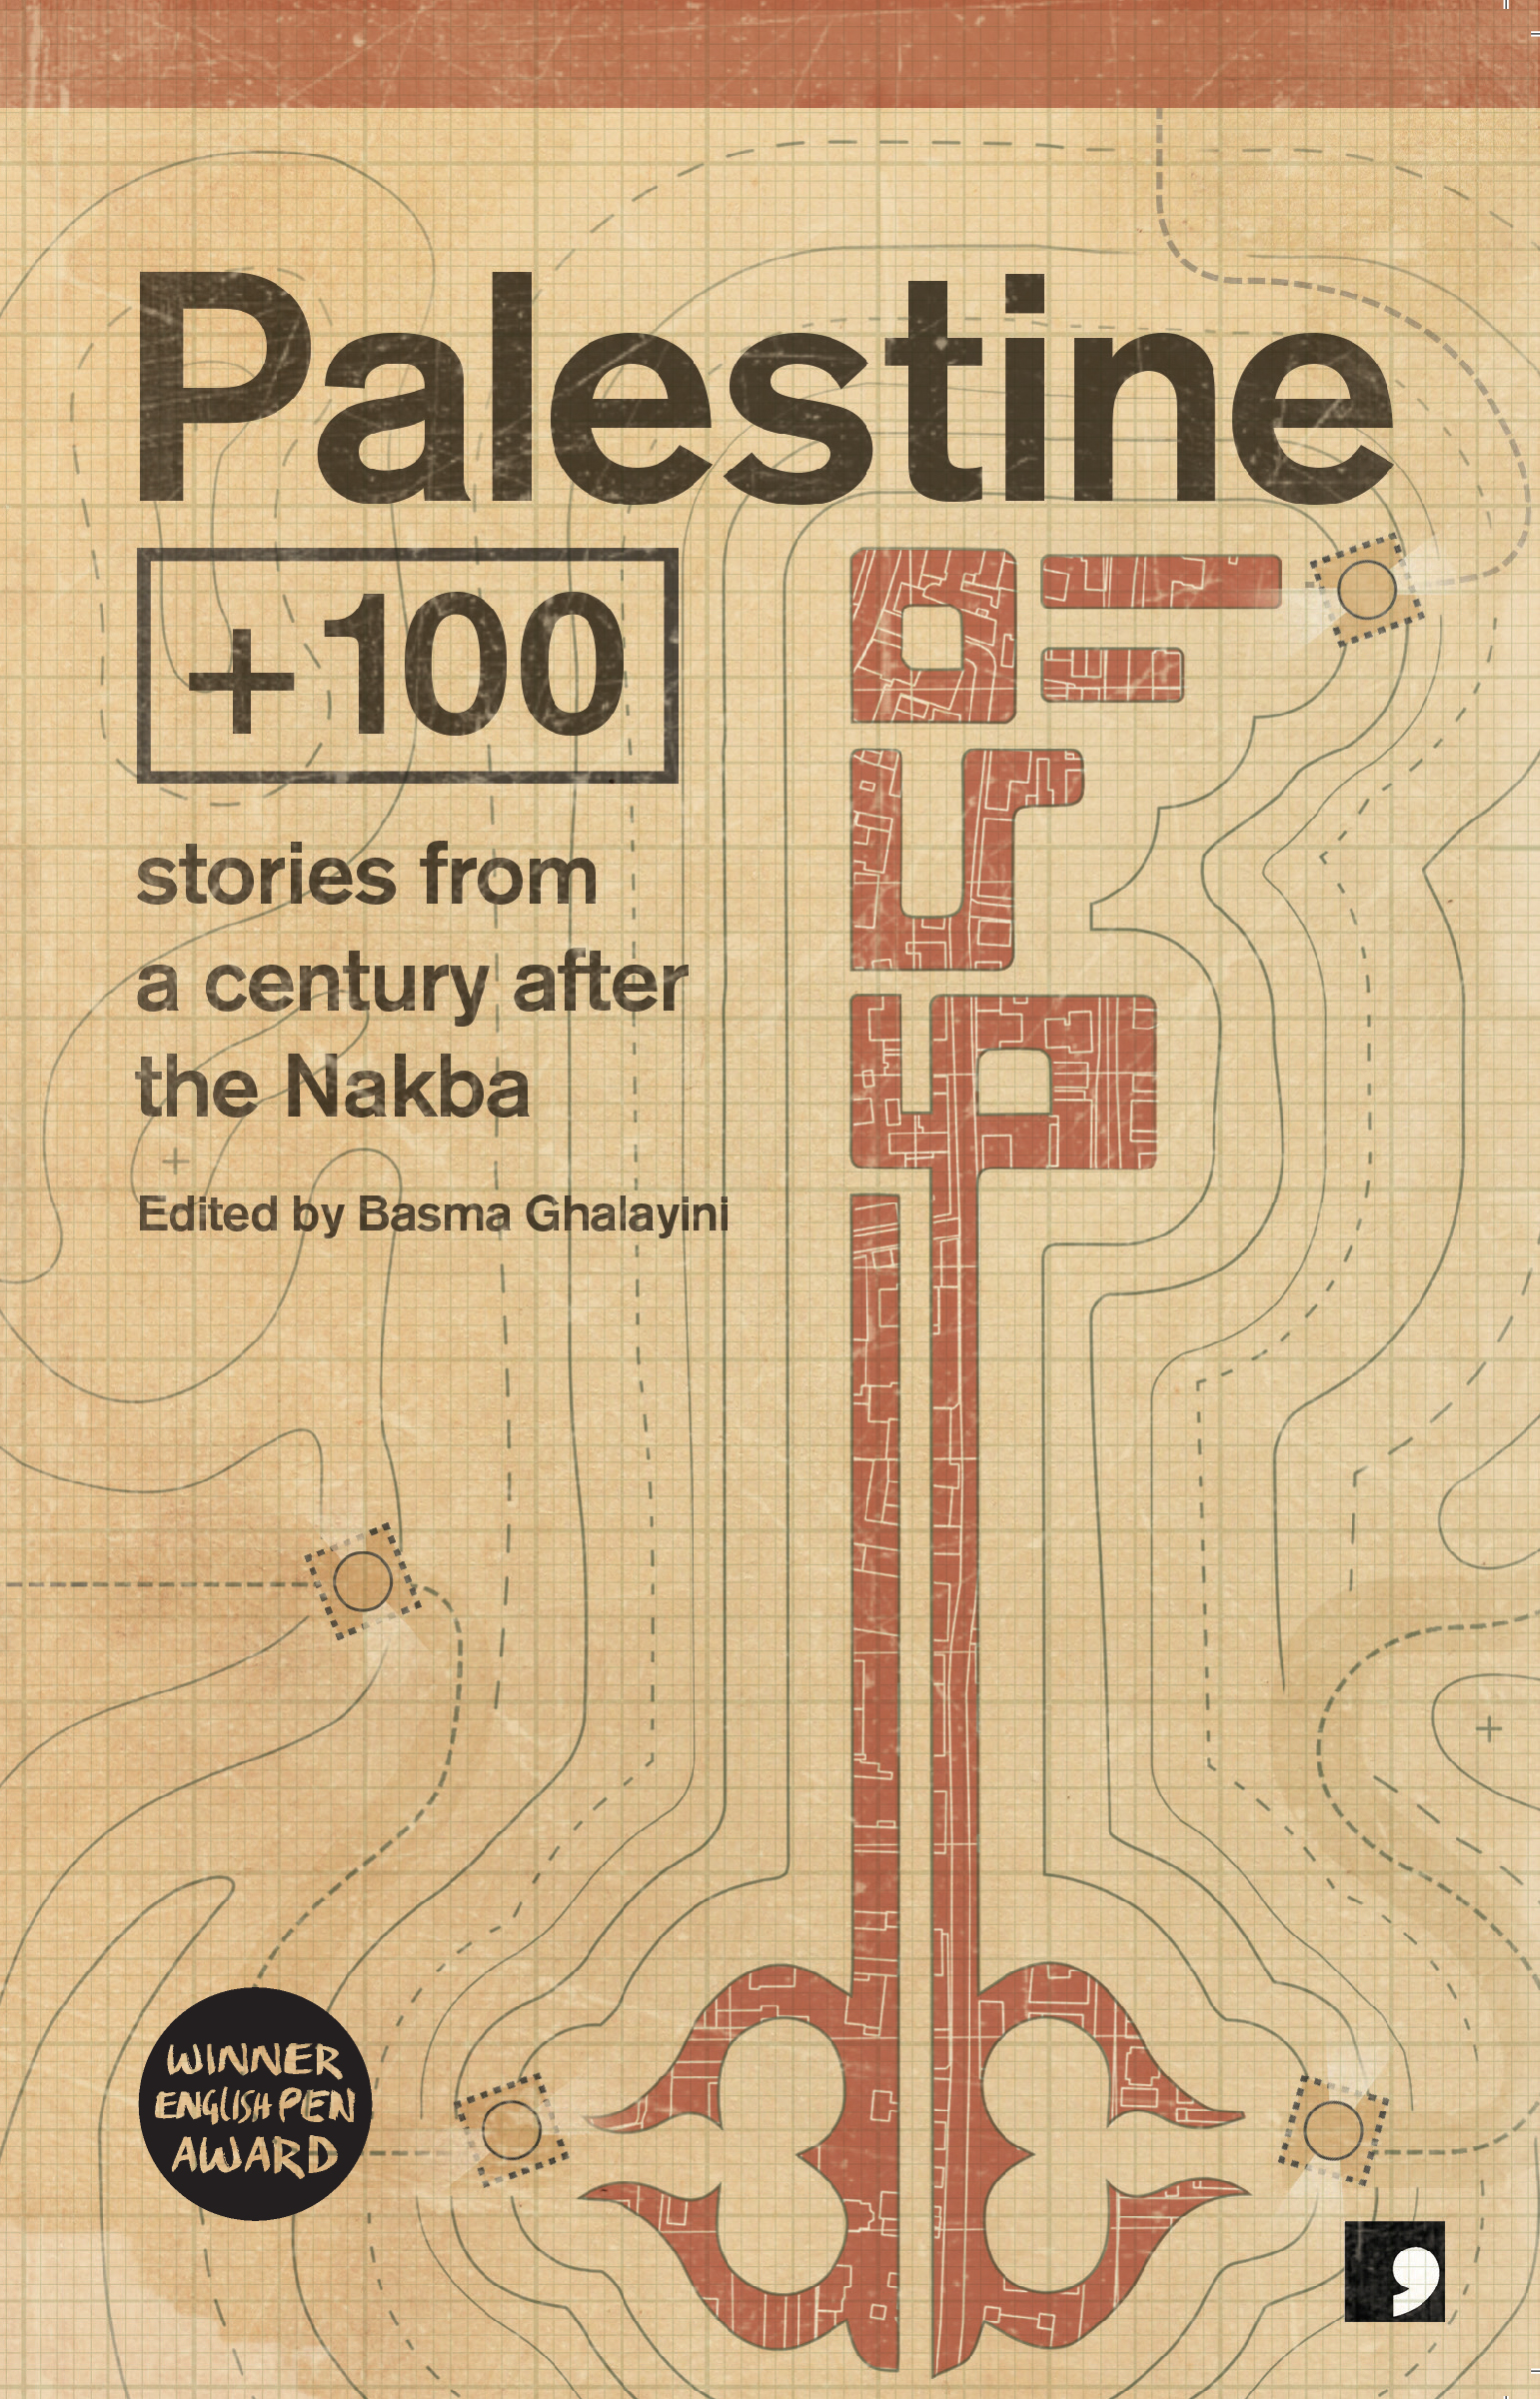 Featured Book - Palestine +100: Stories from a century after the Nakba ed. by Basma Ghalayini (Comma Press, 2019)